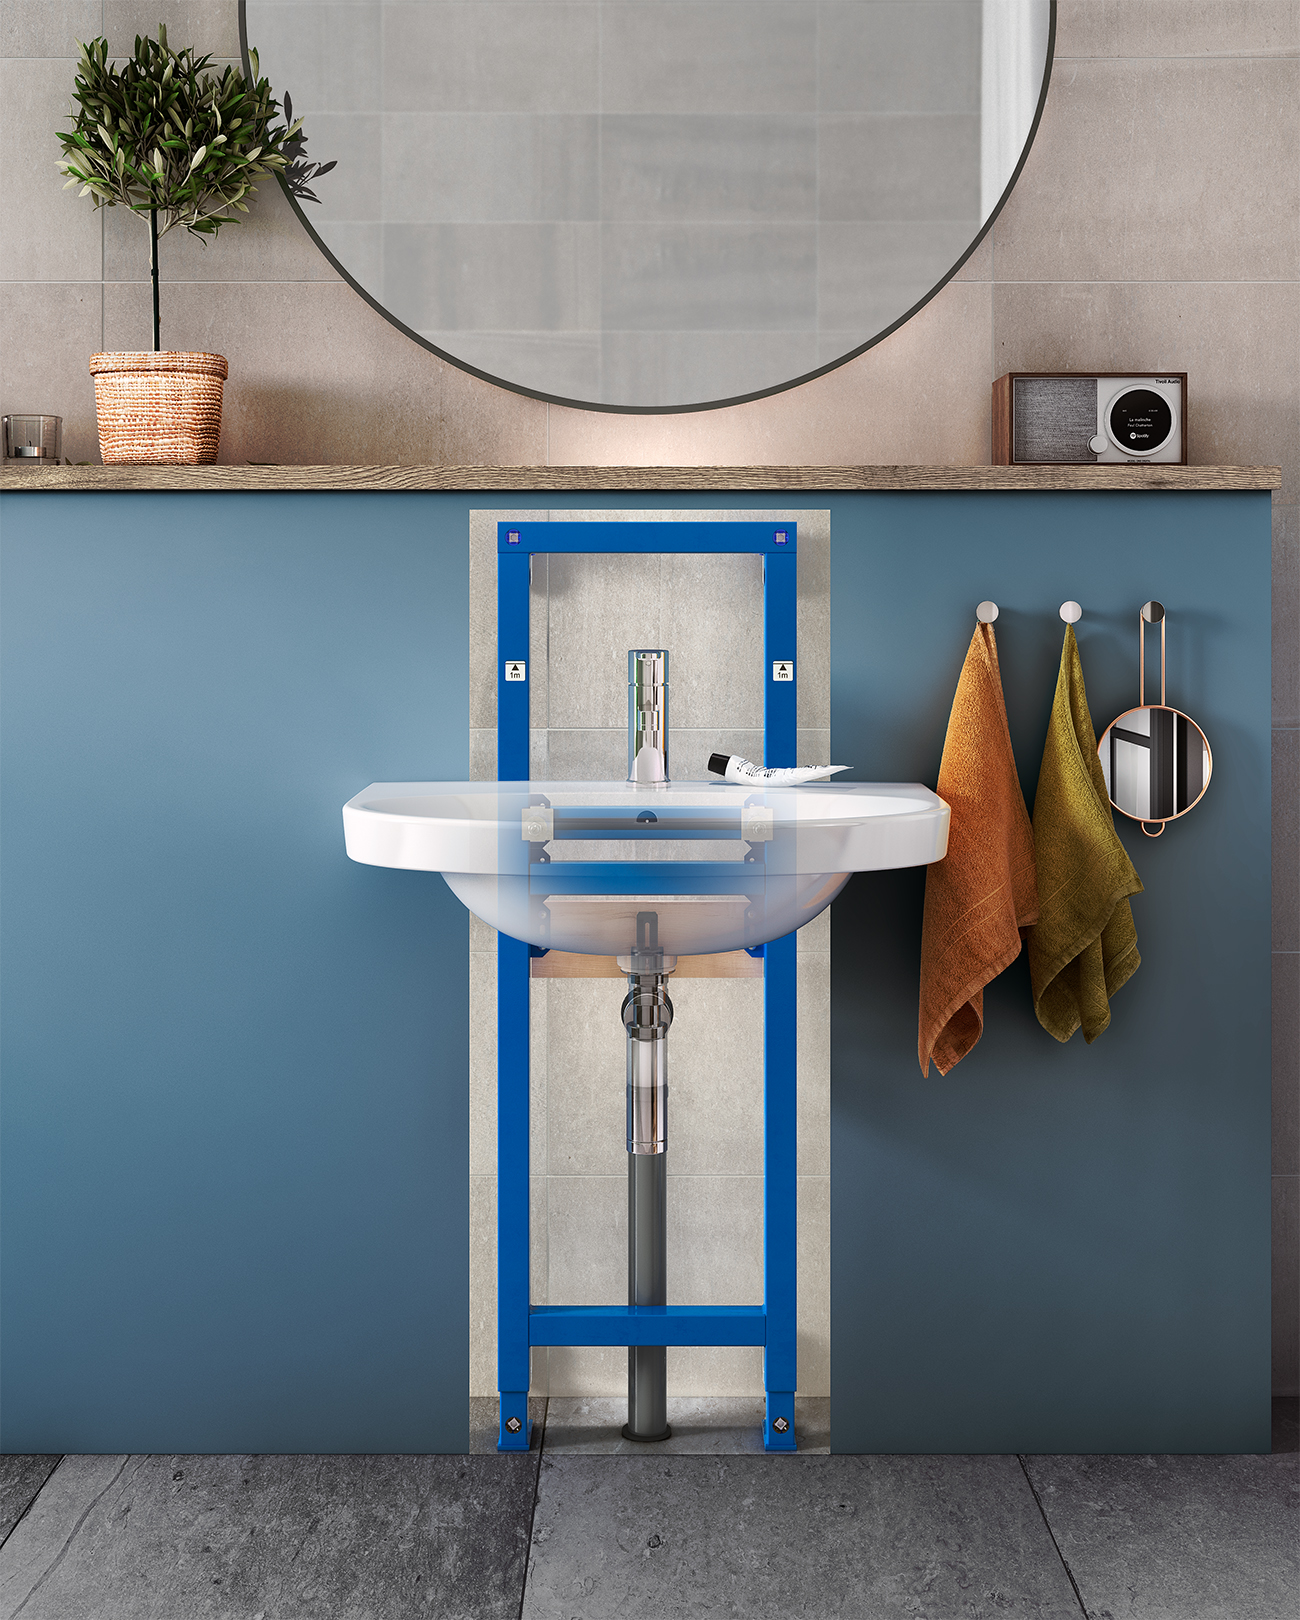 XS_WASHBASIN_FRAME